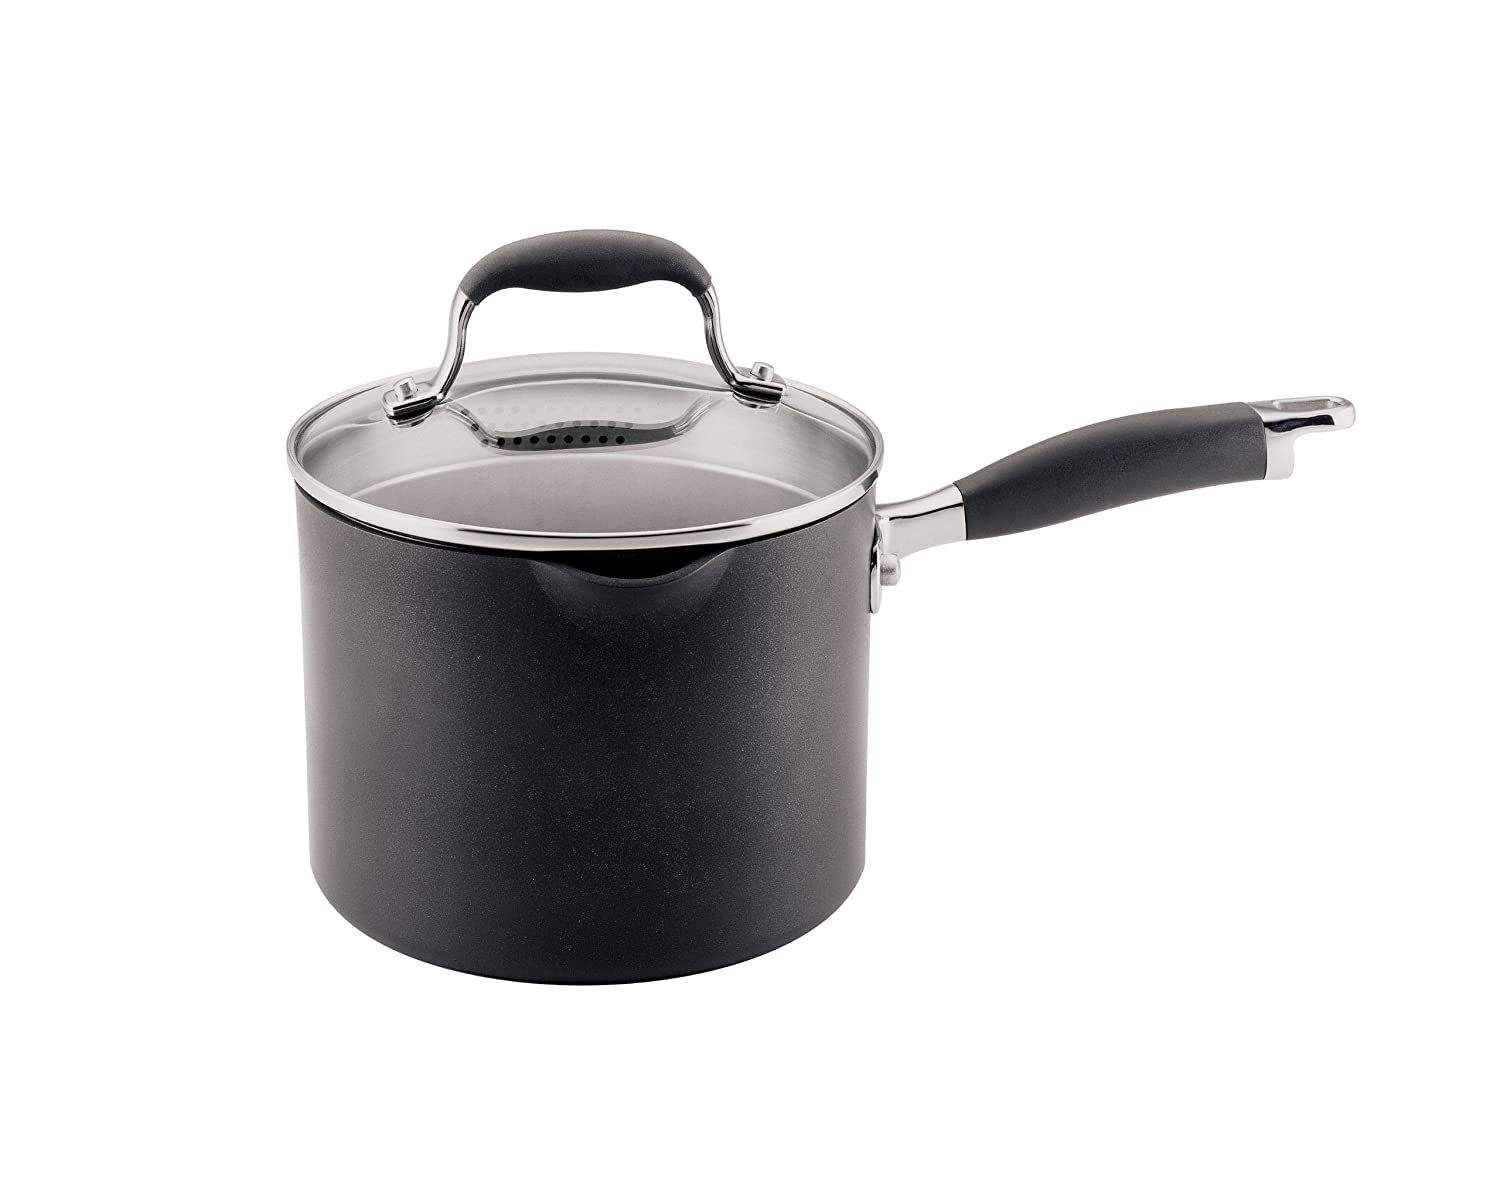 Anolon Advanced Hard Anodized Nonstick 3-1/2-Quart Covered Straining Saucepan with Spouts: Amazon.es: Hogar